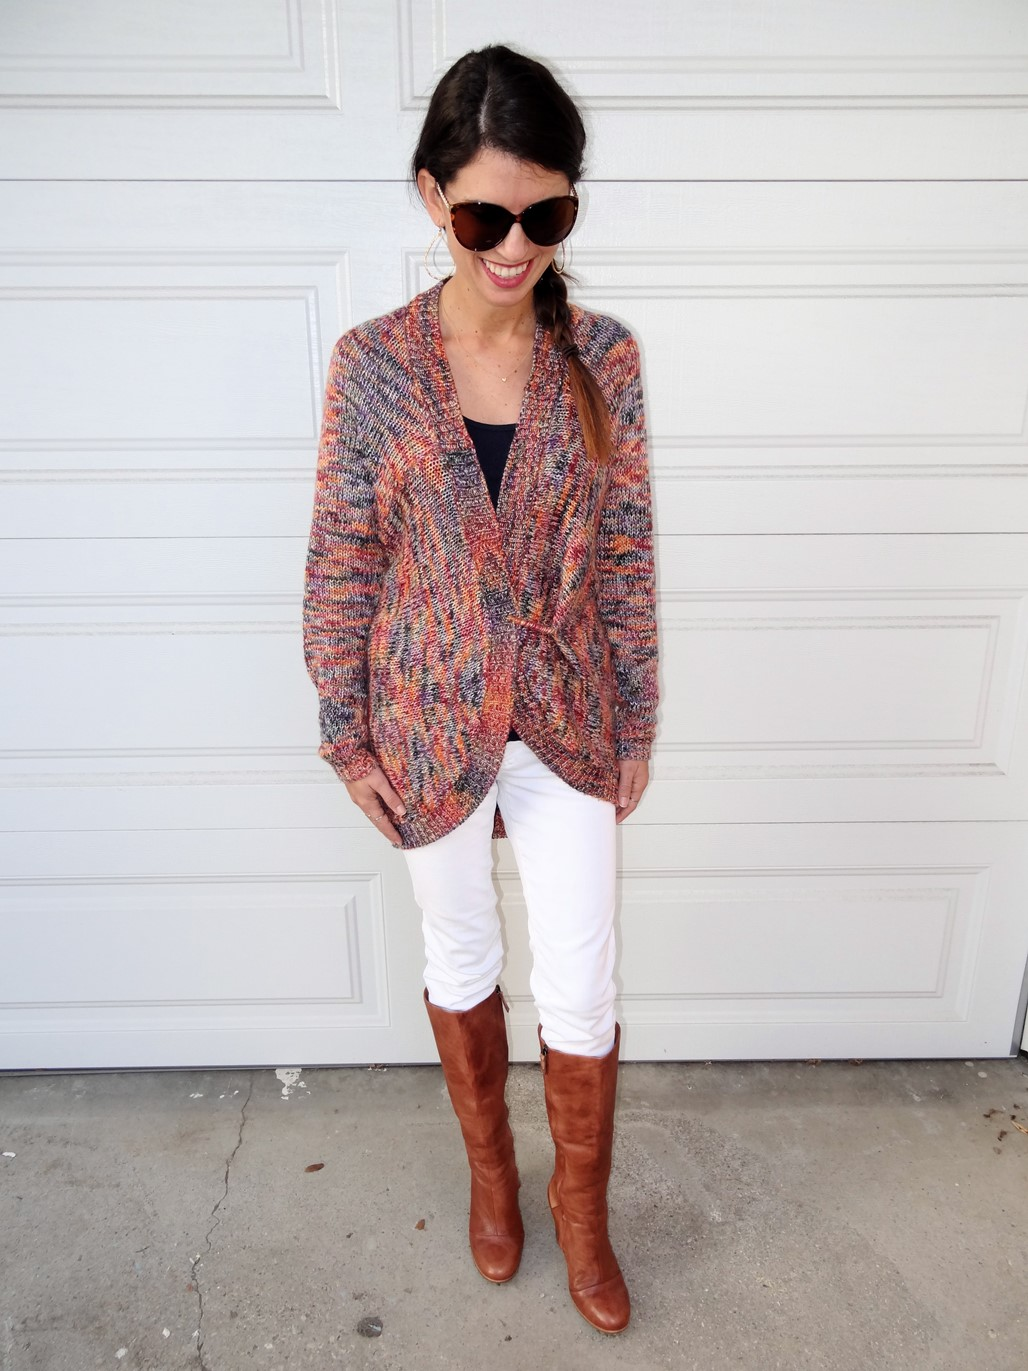 4. Wear of the Week White Pants and a Chunky Sweater